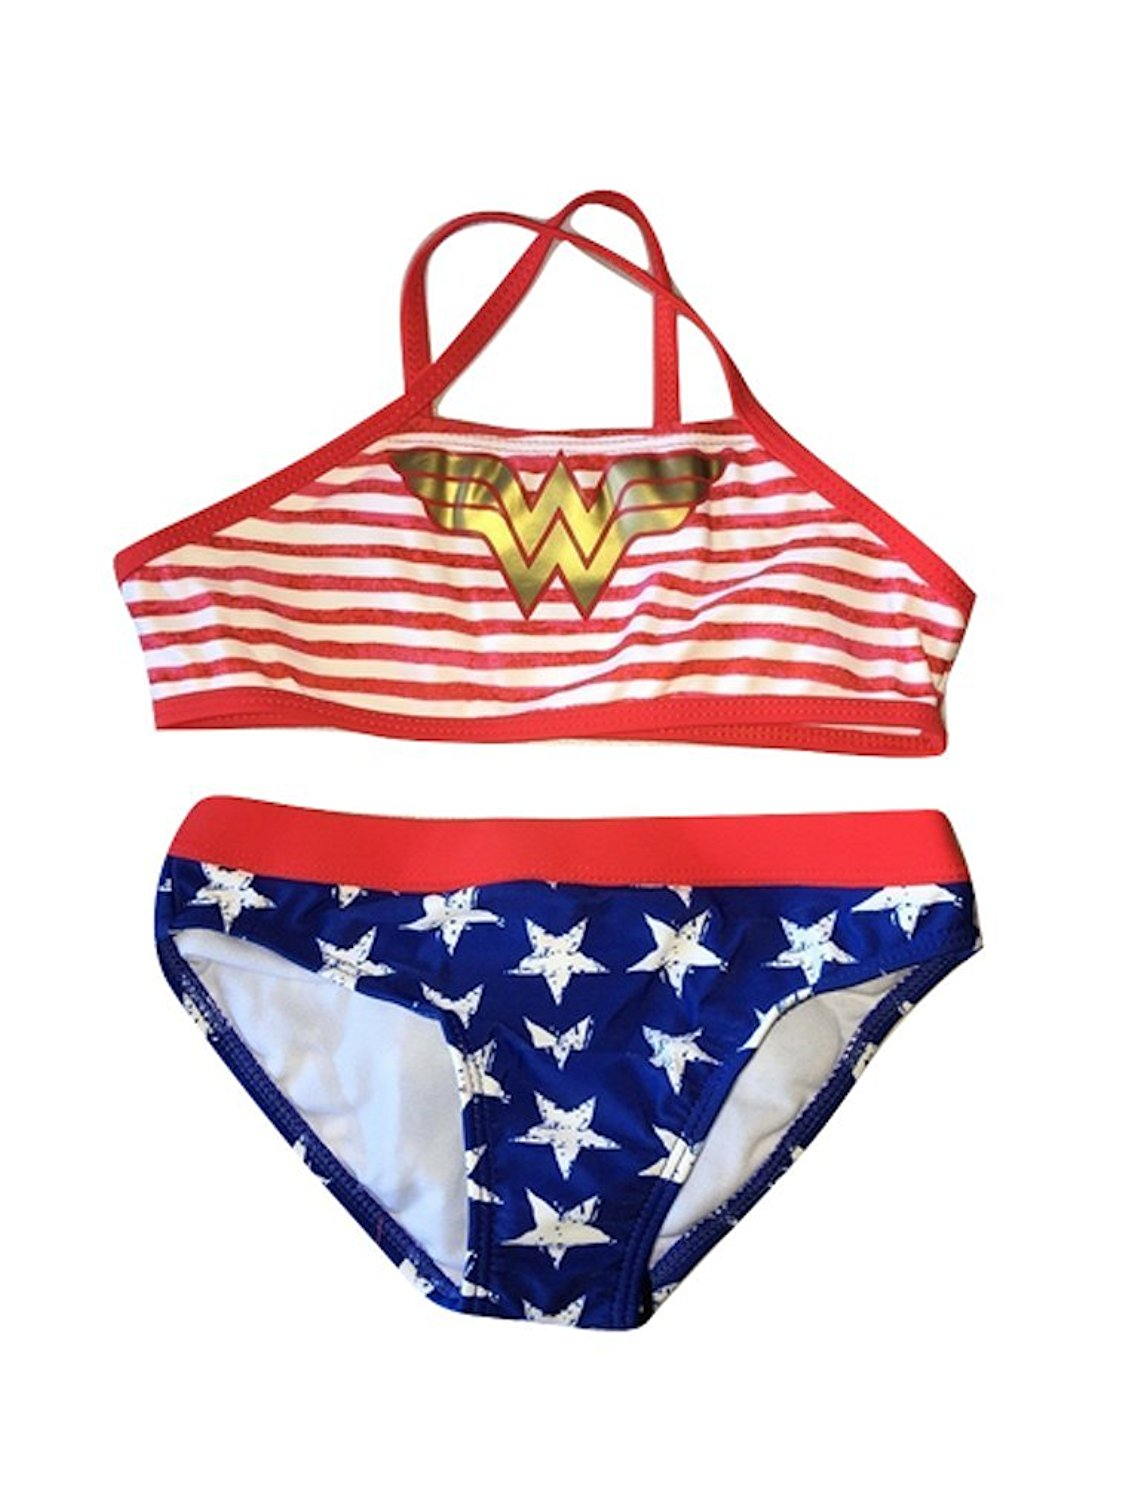 149b773a05756 Get Quotations · In Gear Girls Sporty Two Piece Bikini Swimsuit Wonder  Woman Sizes 4 to 8 Years